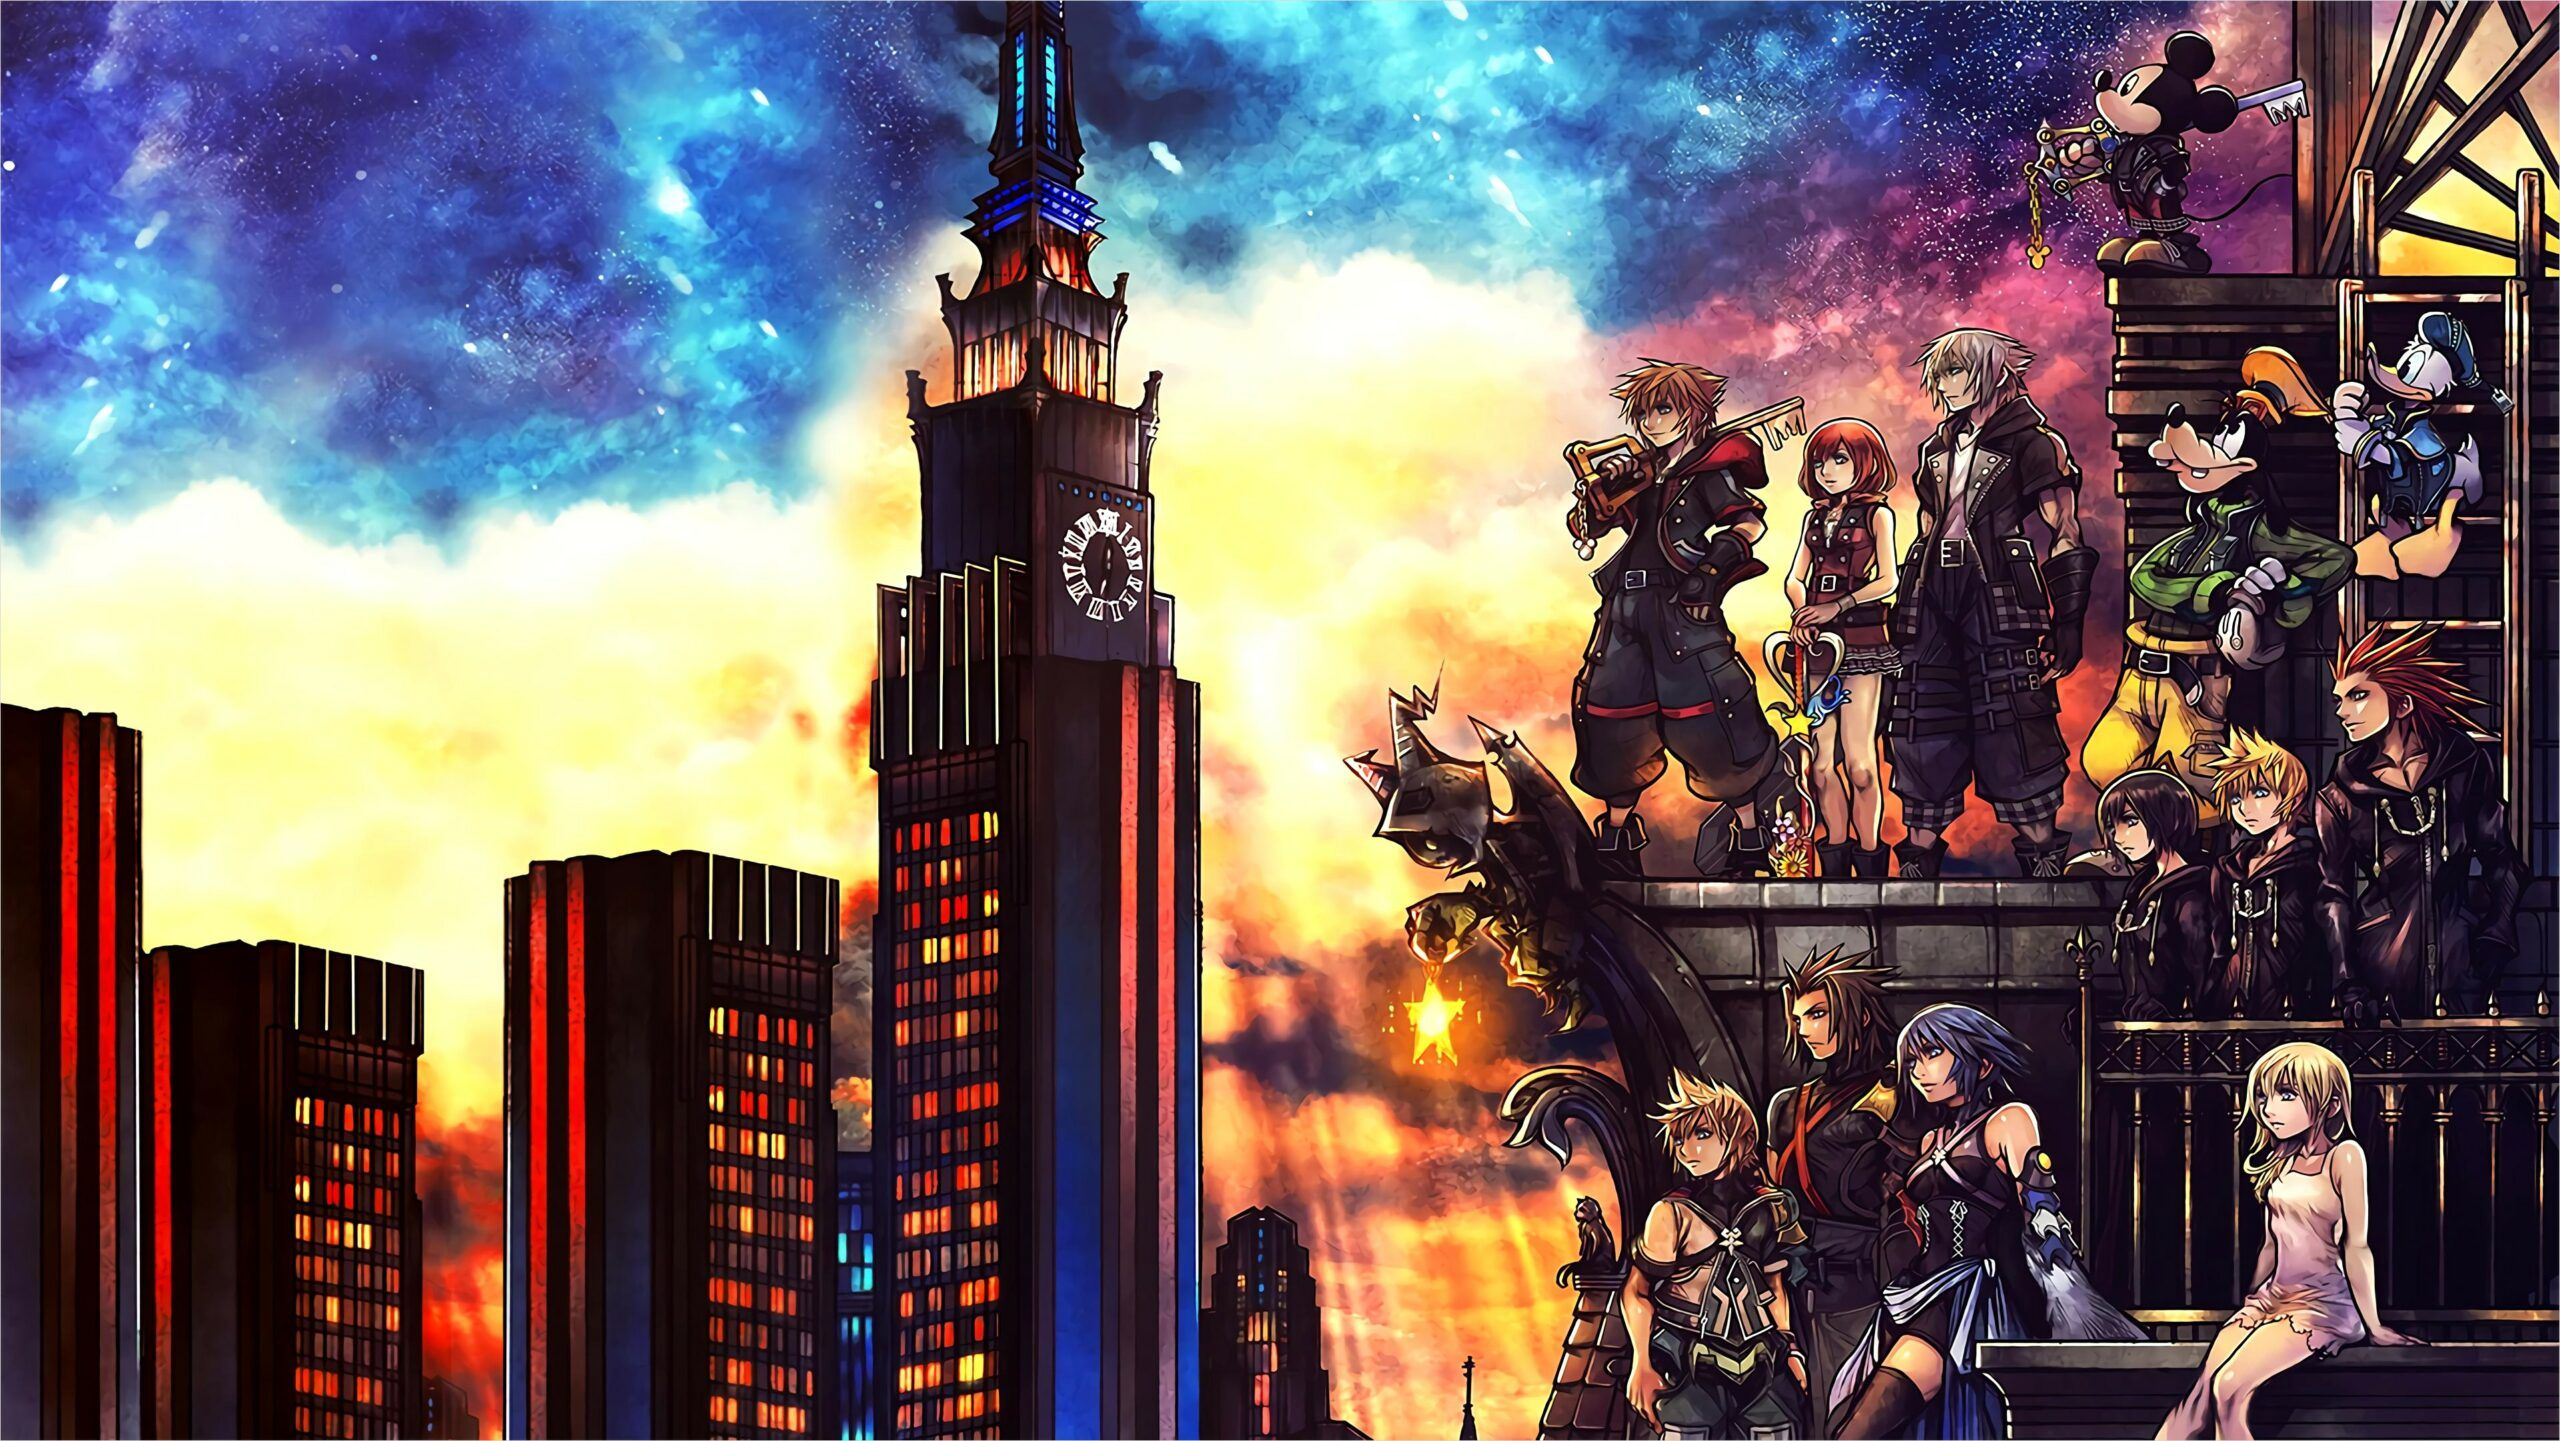 4k Wallpaper Kingdom Hearts In 2020 Kingdom Hearts Kingdom Hearts 3 Kingdom